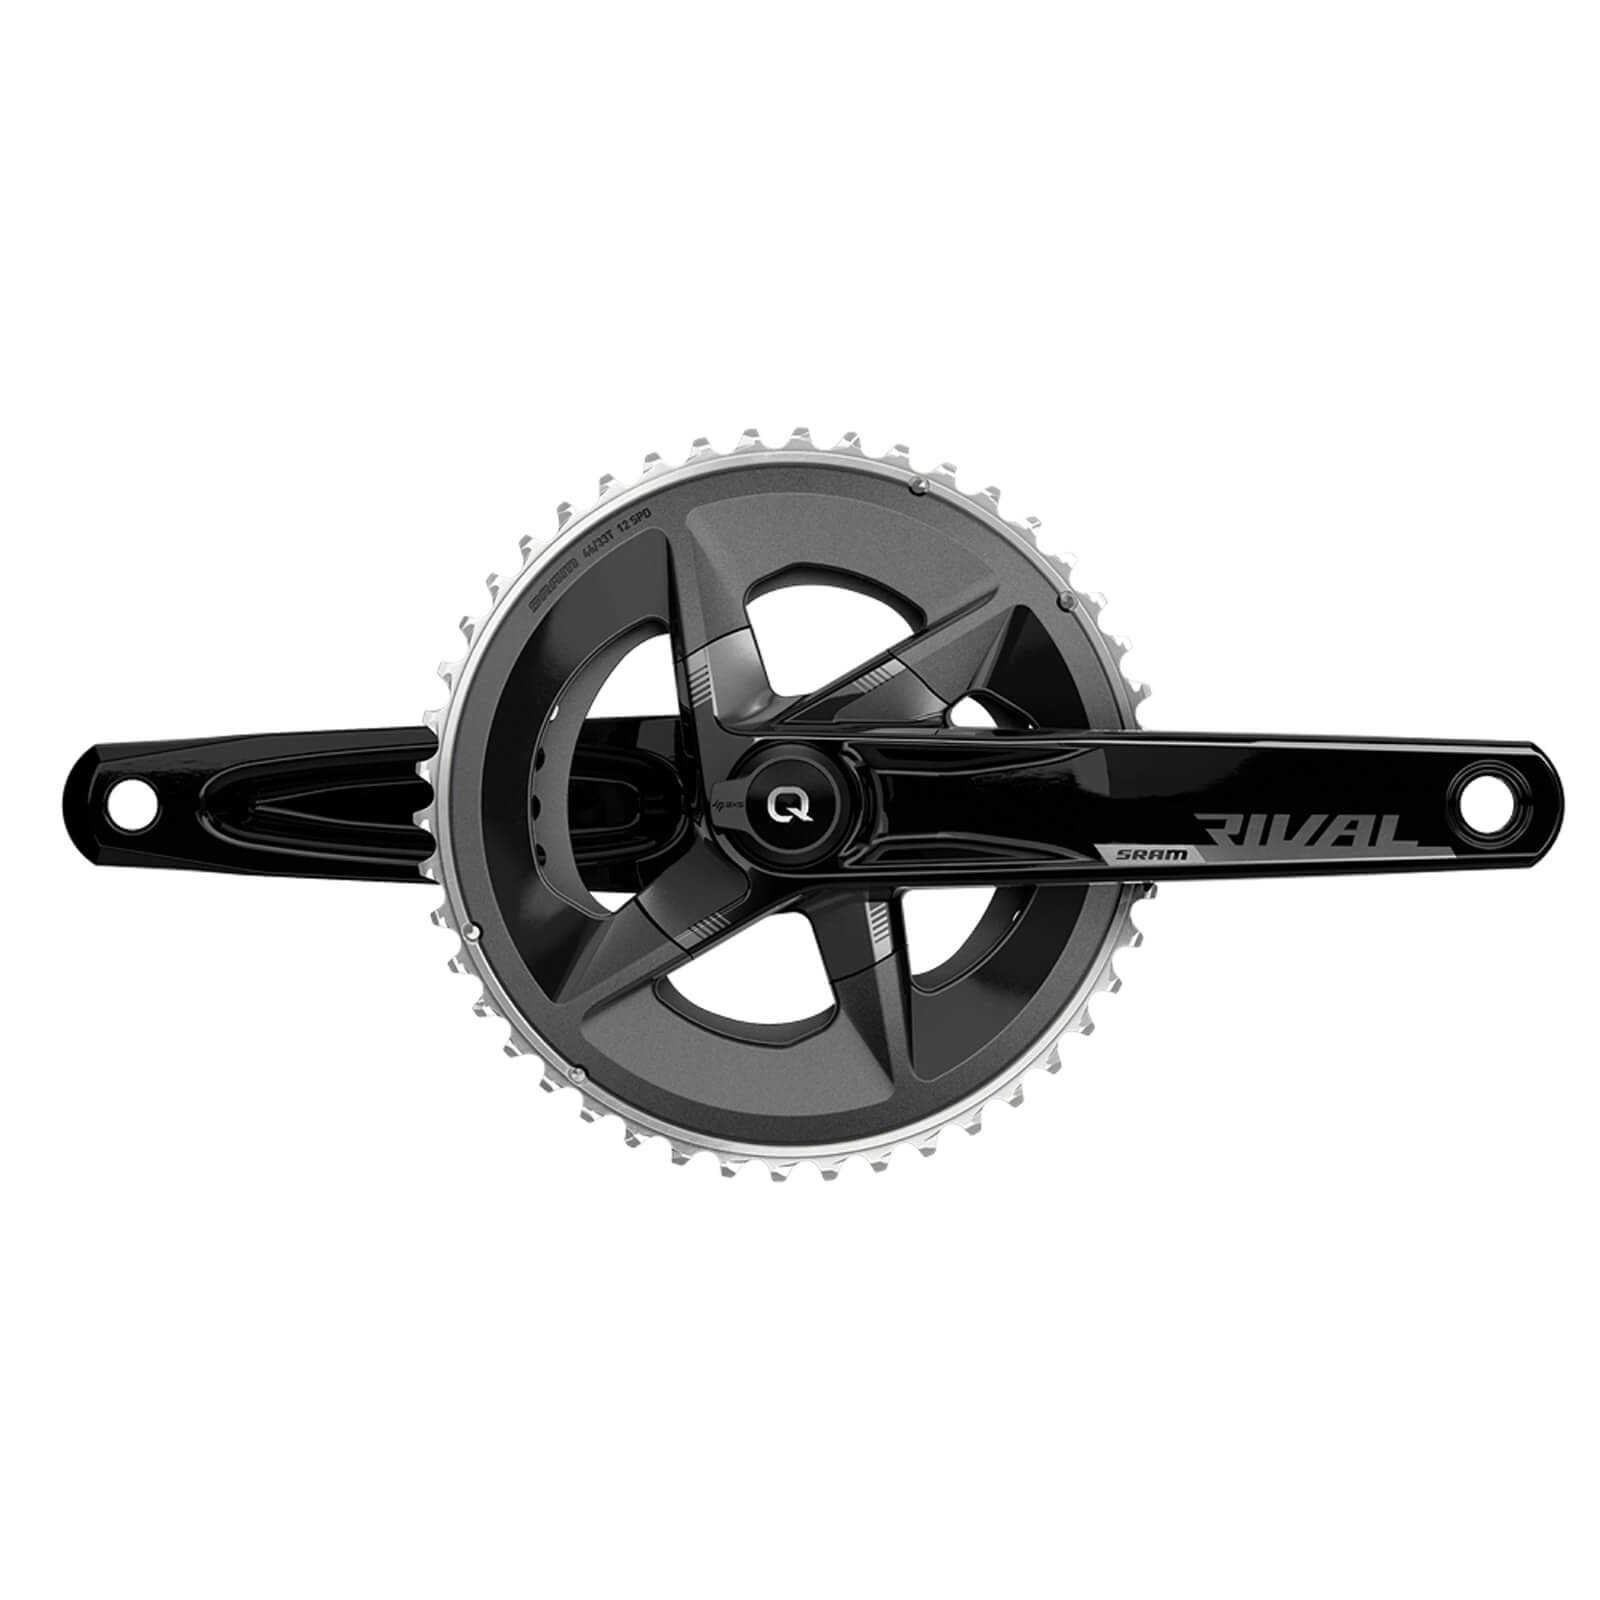 Sram Rival Axs Power Meter Chainset - 46/33 - 172.5mm